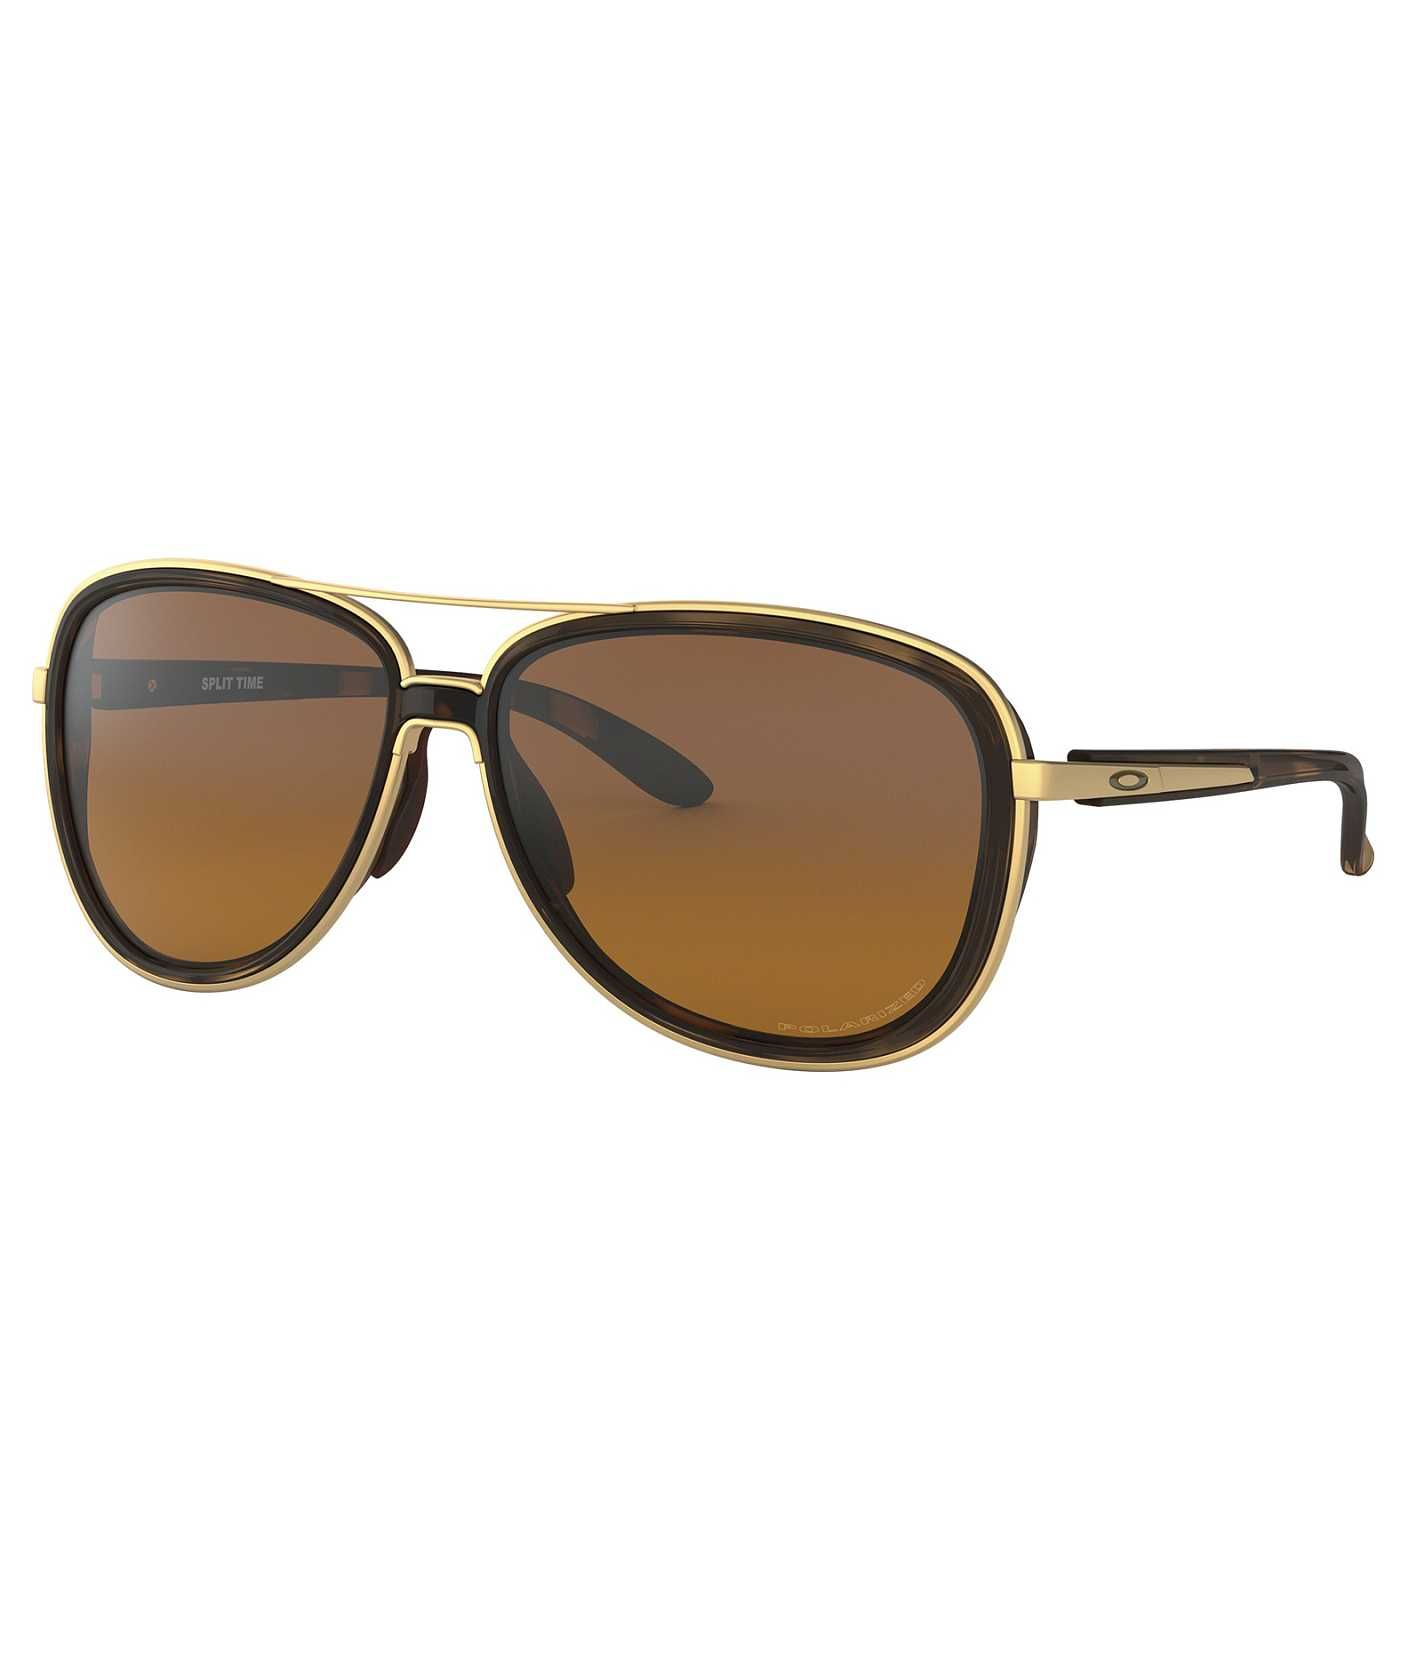 d023d6afae Oakley Split Time Polarized Sunglasses - Women s Accessories in Brown  Tortoise